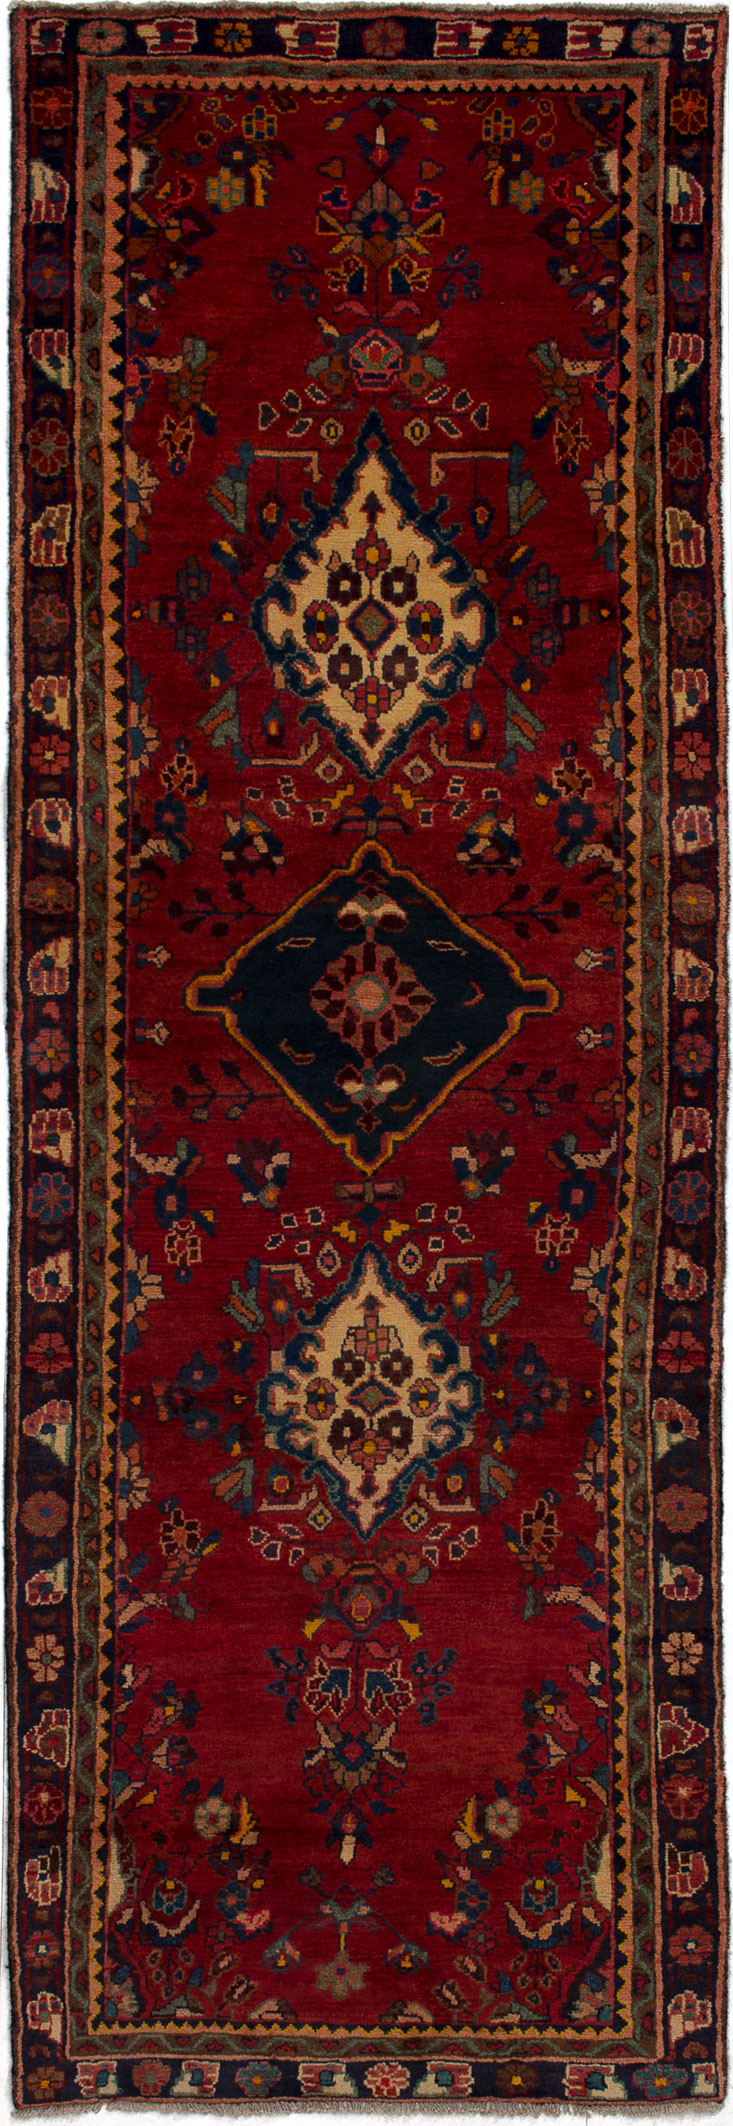 """Hand-knotted Hamadan Red Wool Rug 3'1"""" x 9'2""""  Size: 3'1"""" x 9'2"""""""